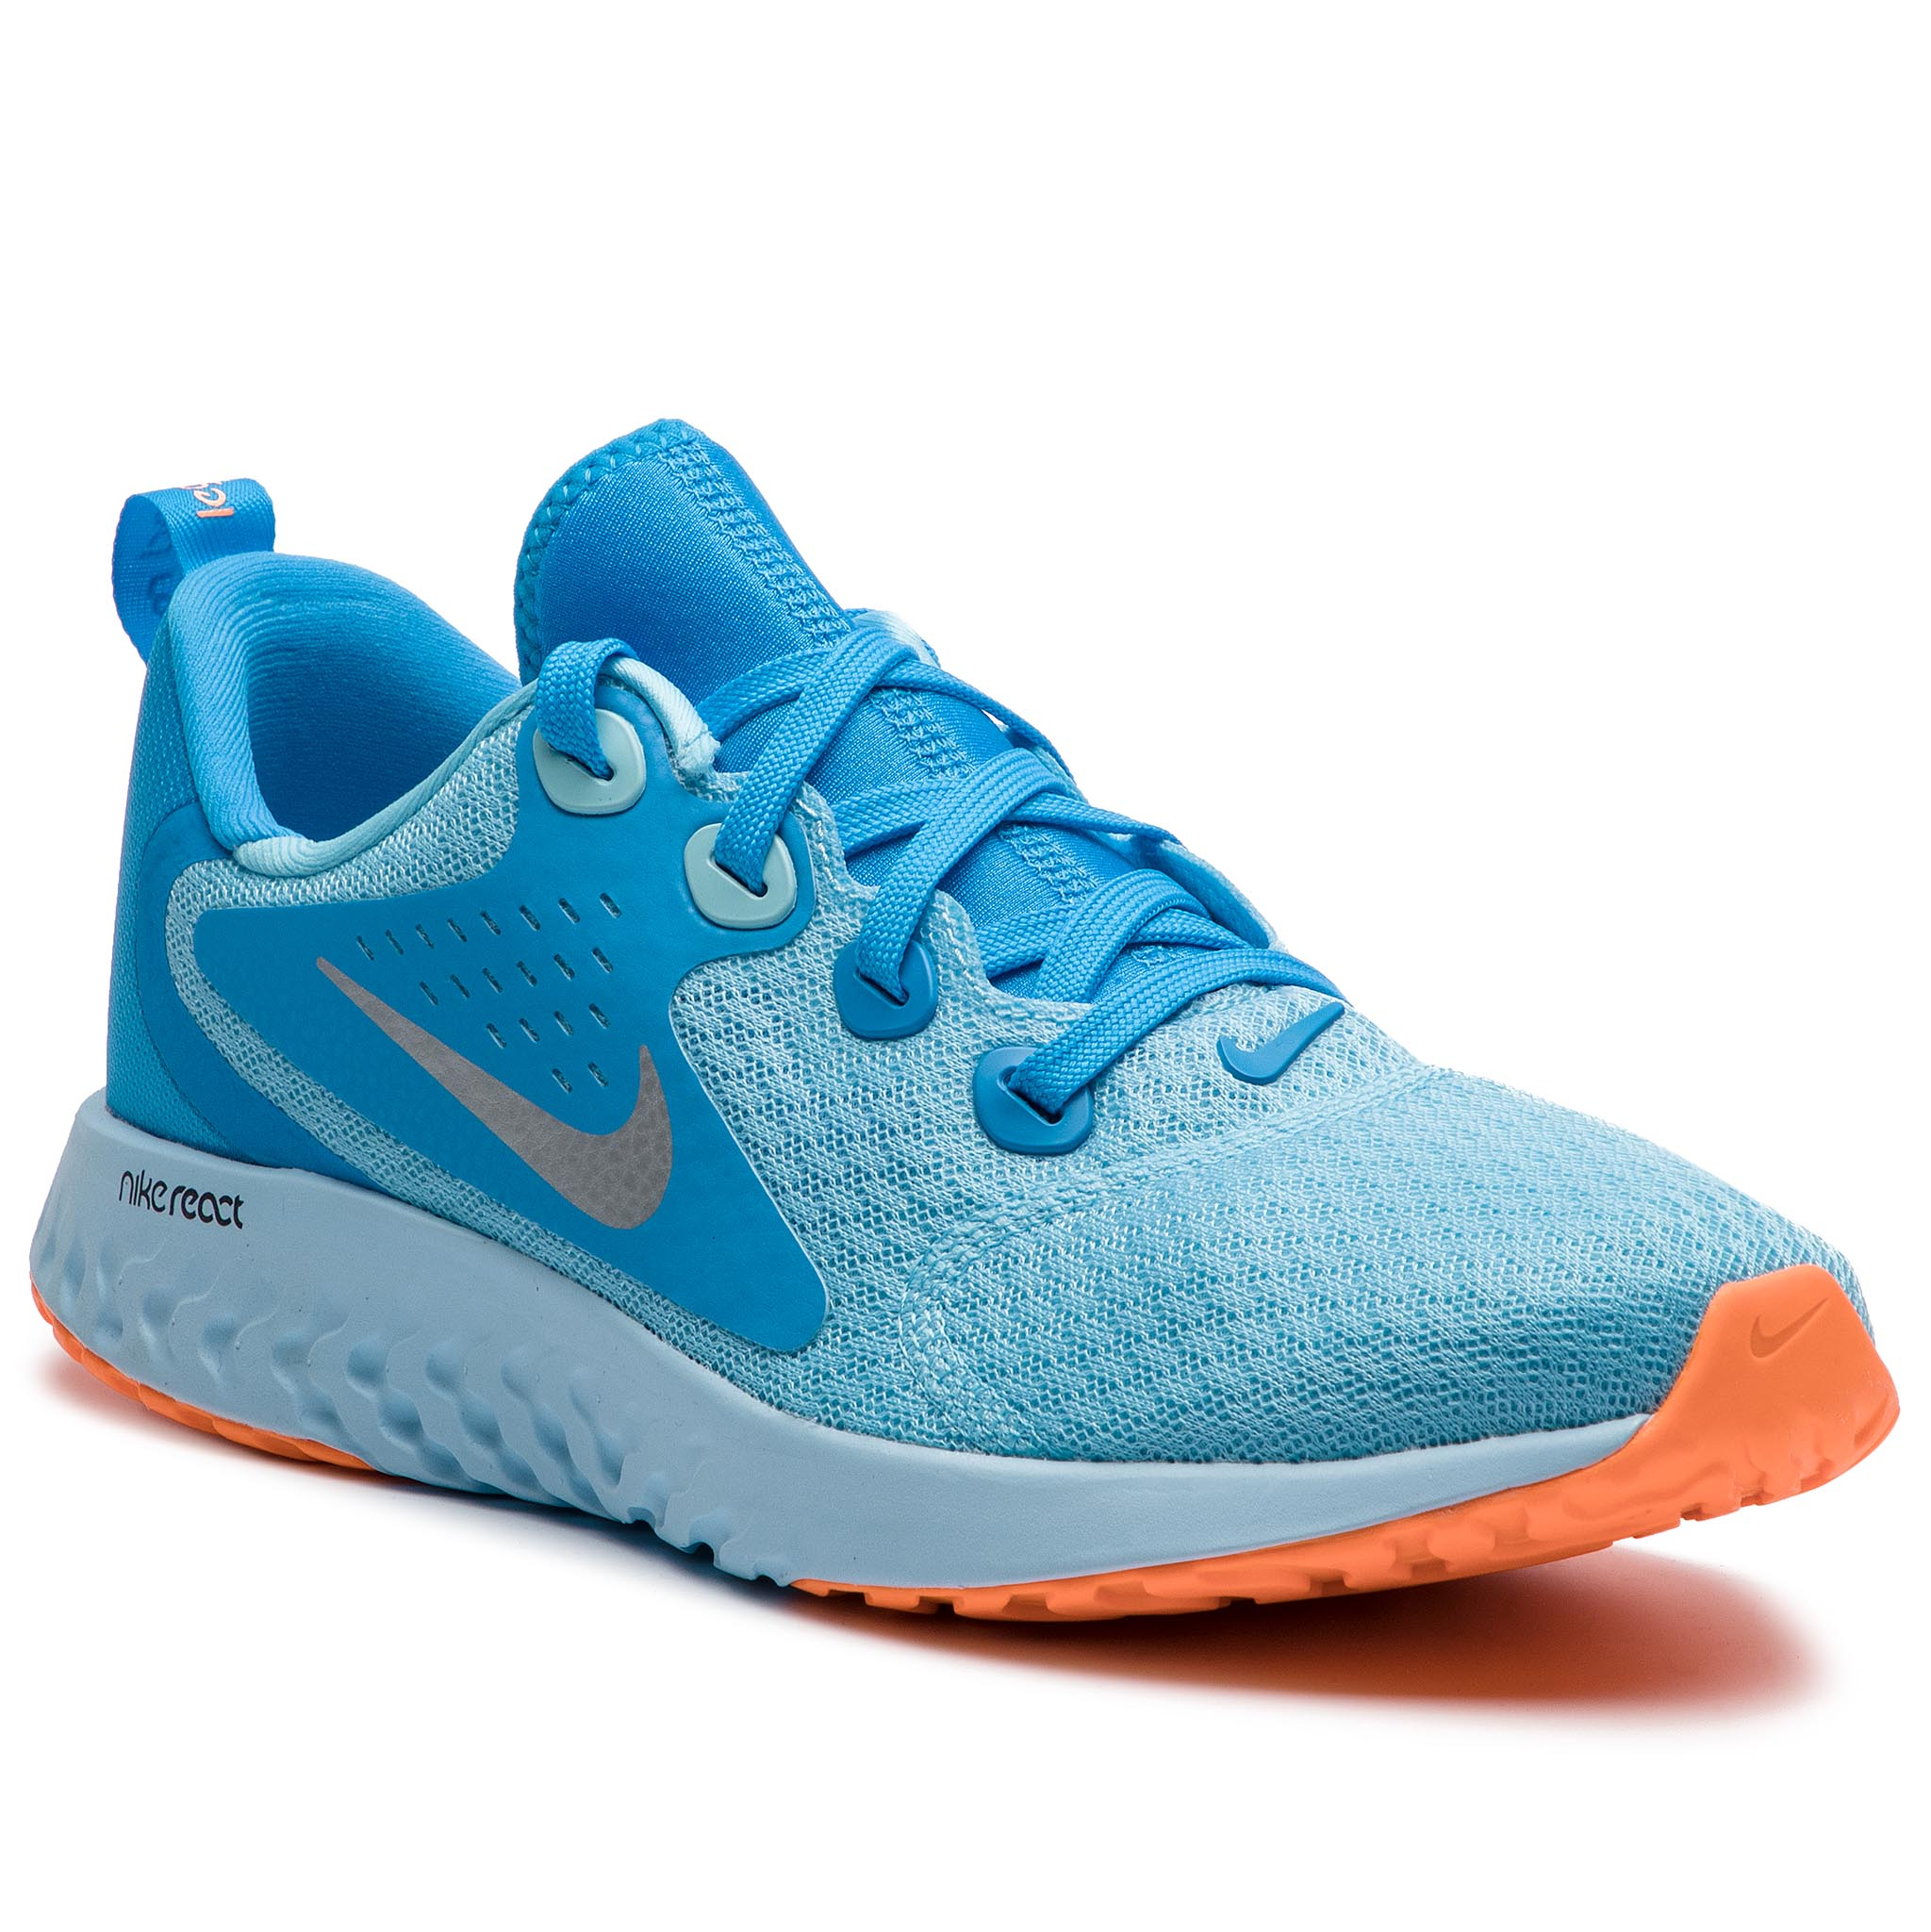 b1d9917100 Shoes NIKE - Legend React (GS) AH9437 600 Pink/Ashen Slate - Indoor ...